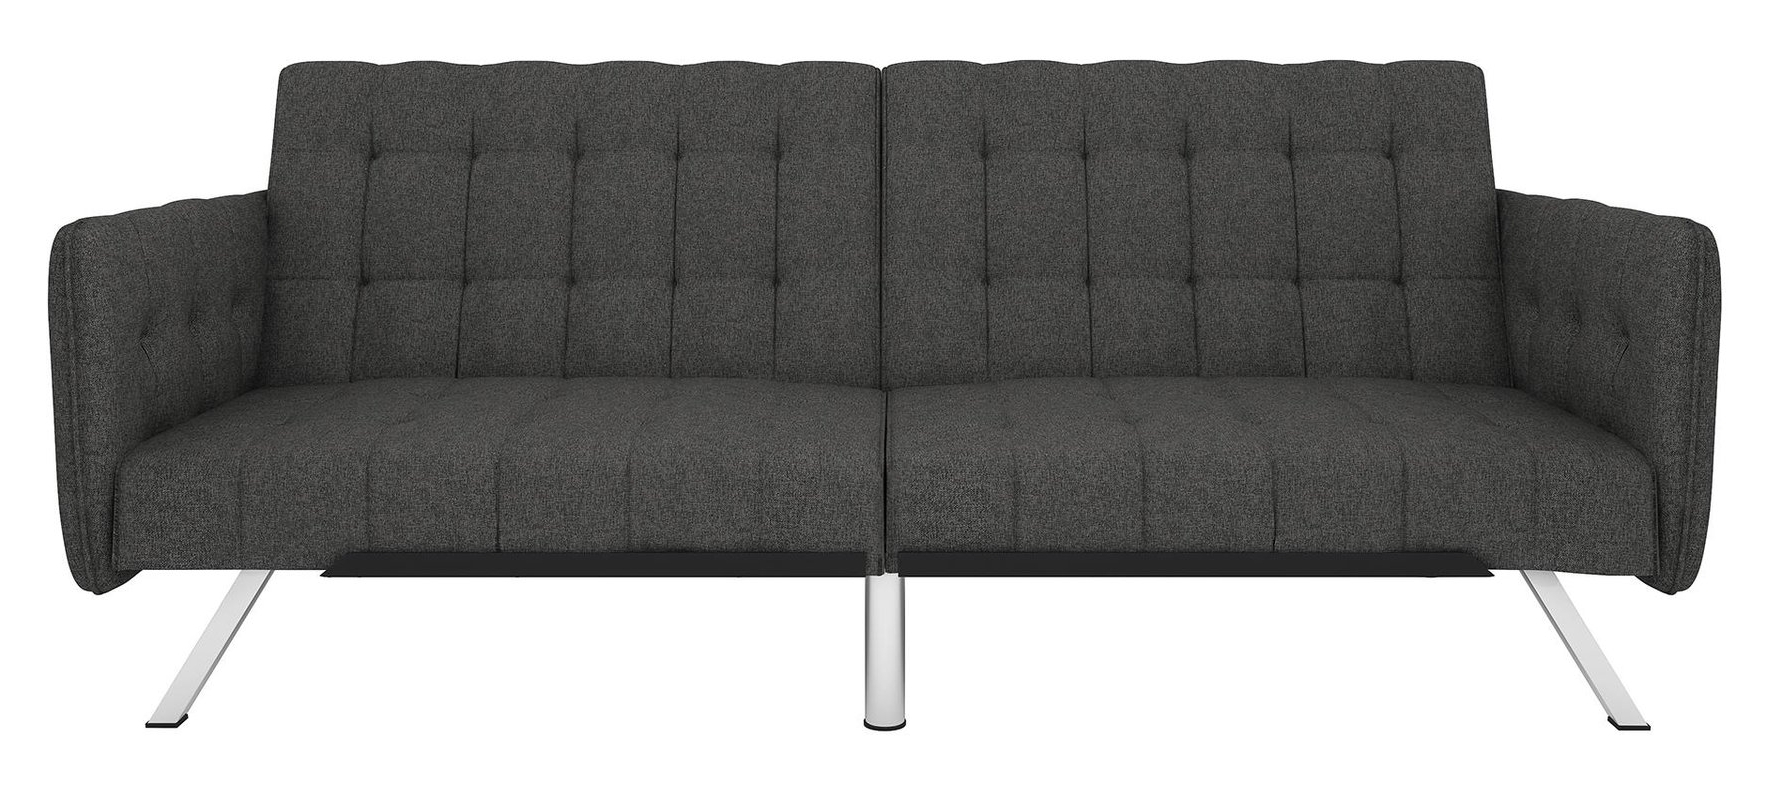 Joss & Main Regarding Convertible Sofas (View 12 of 20)